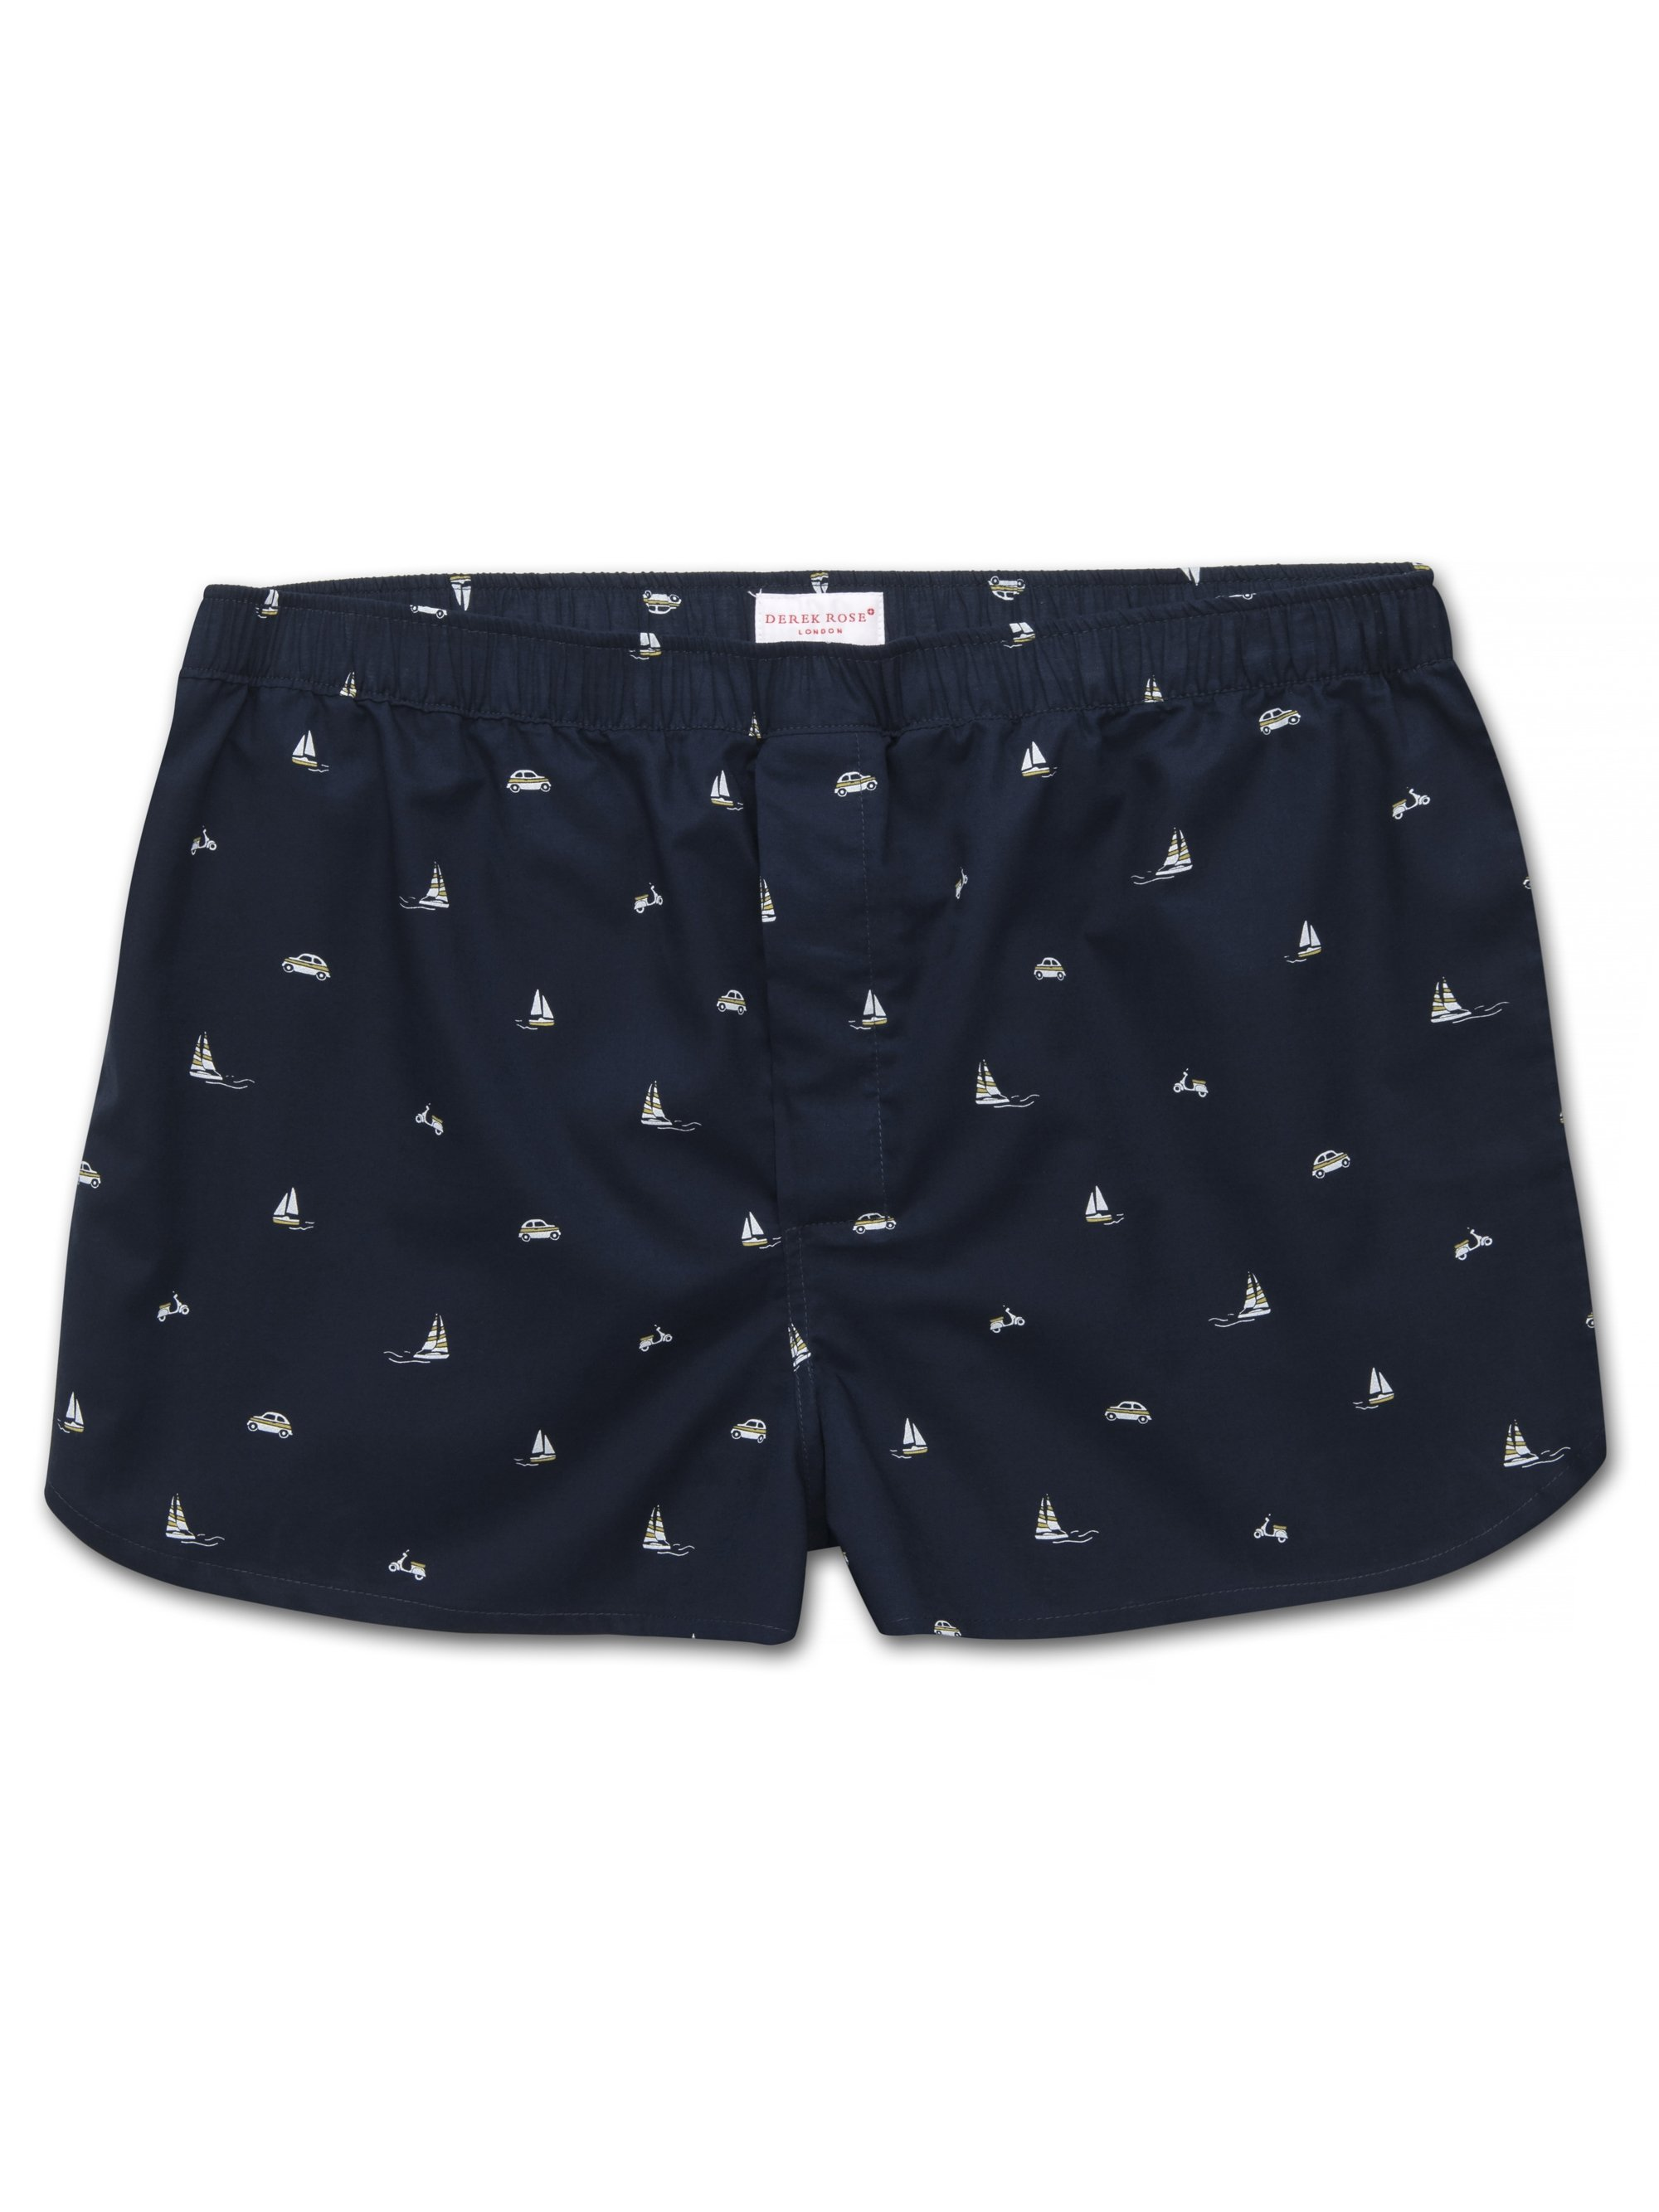 Men's Modern Fit Boxer Shorts Nelson 73 Cotton Batiste Navy